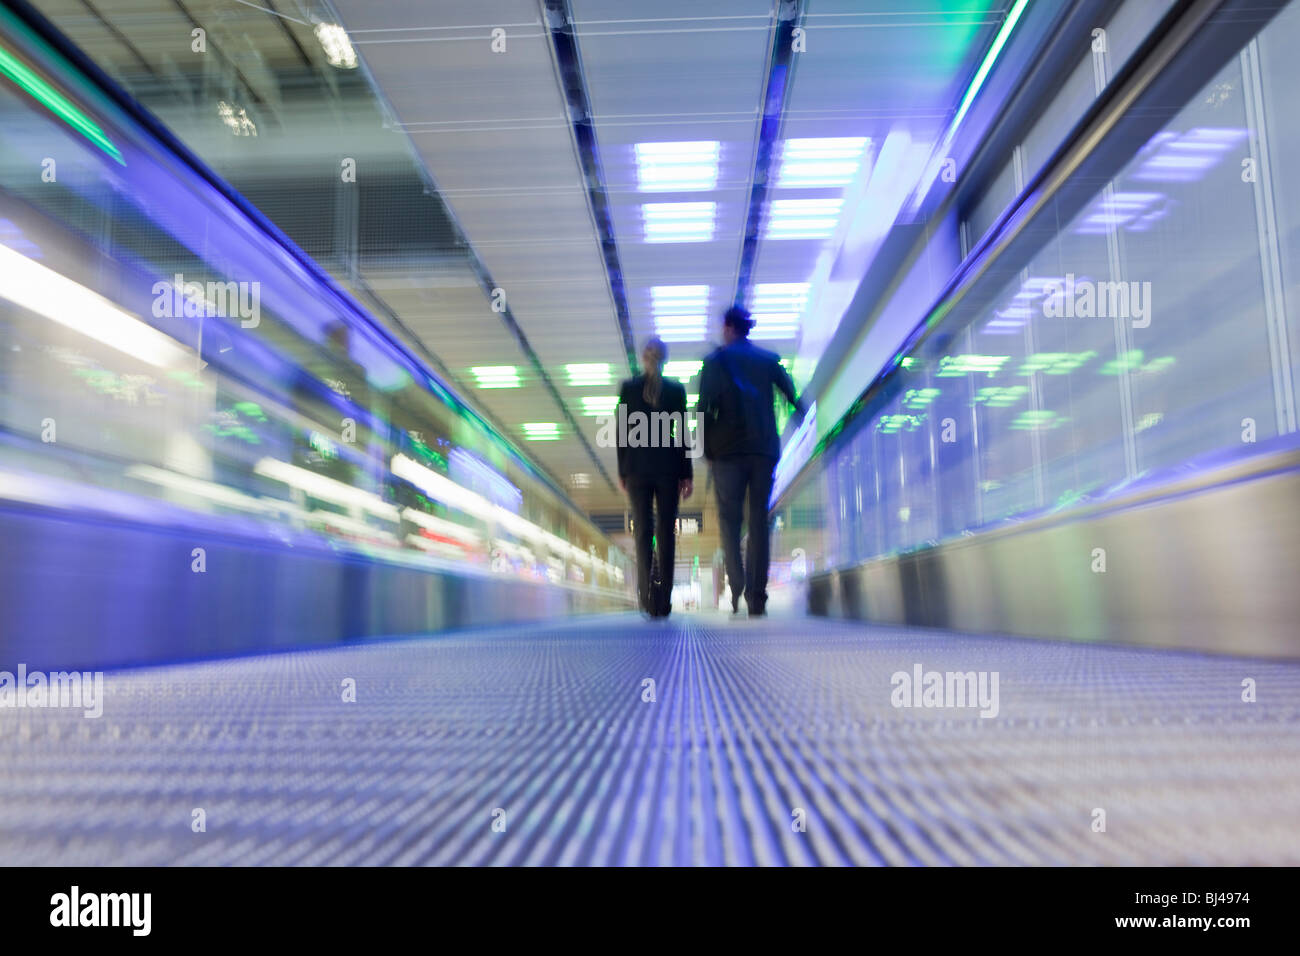 conveyor belt with couple in background - Stock Image